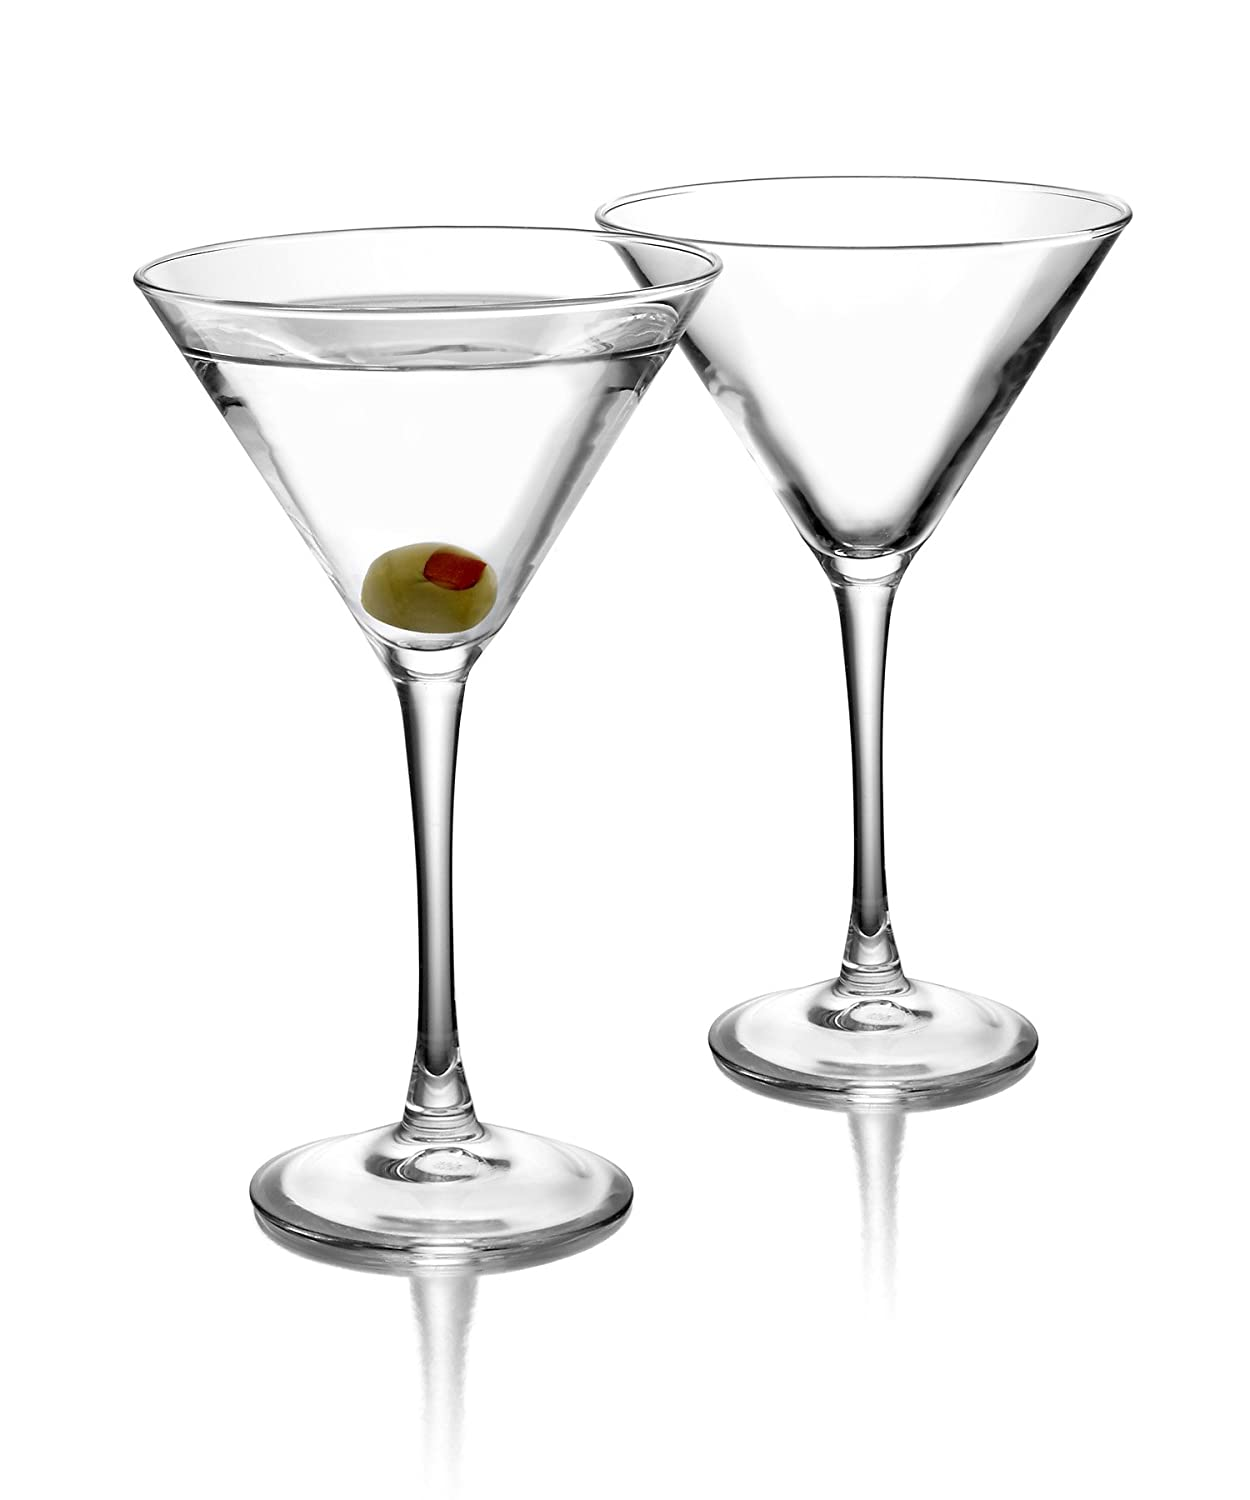 ARC International Luminarc Cachet Martini Glass, 10-Ounce, Set of 4 H3197